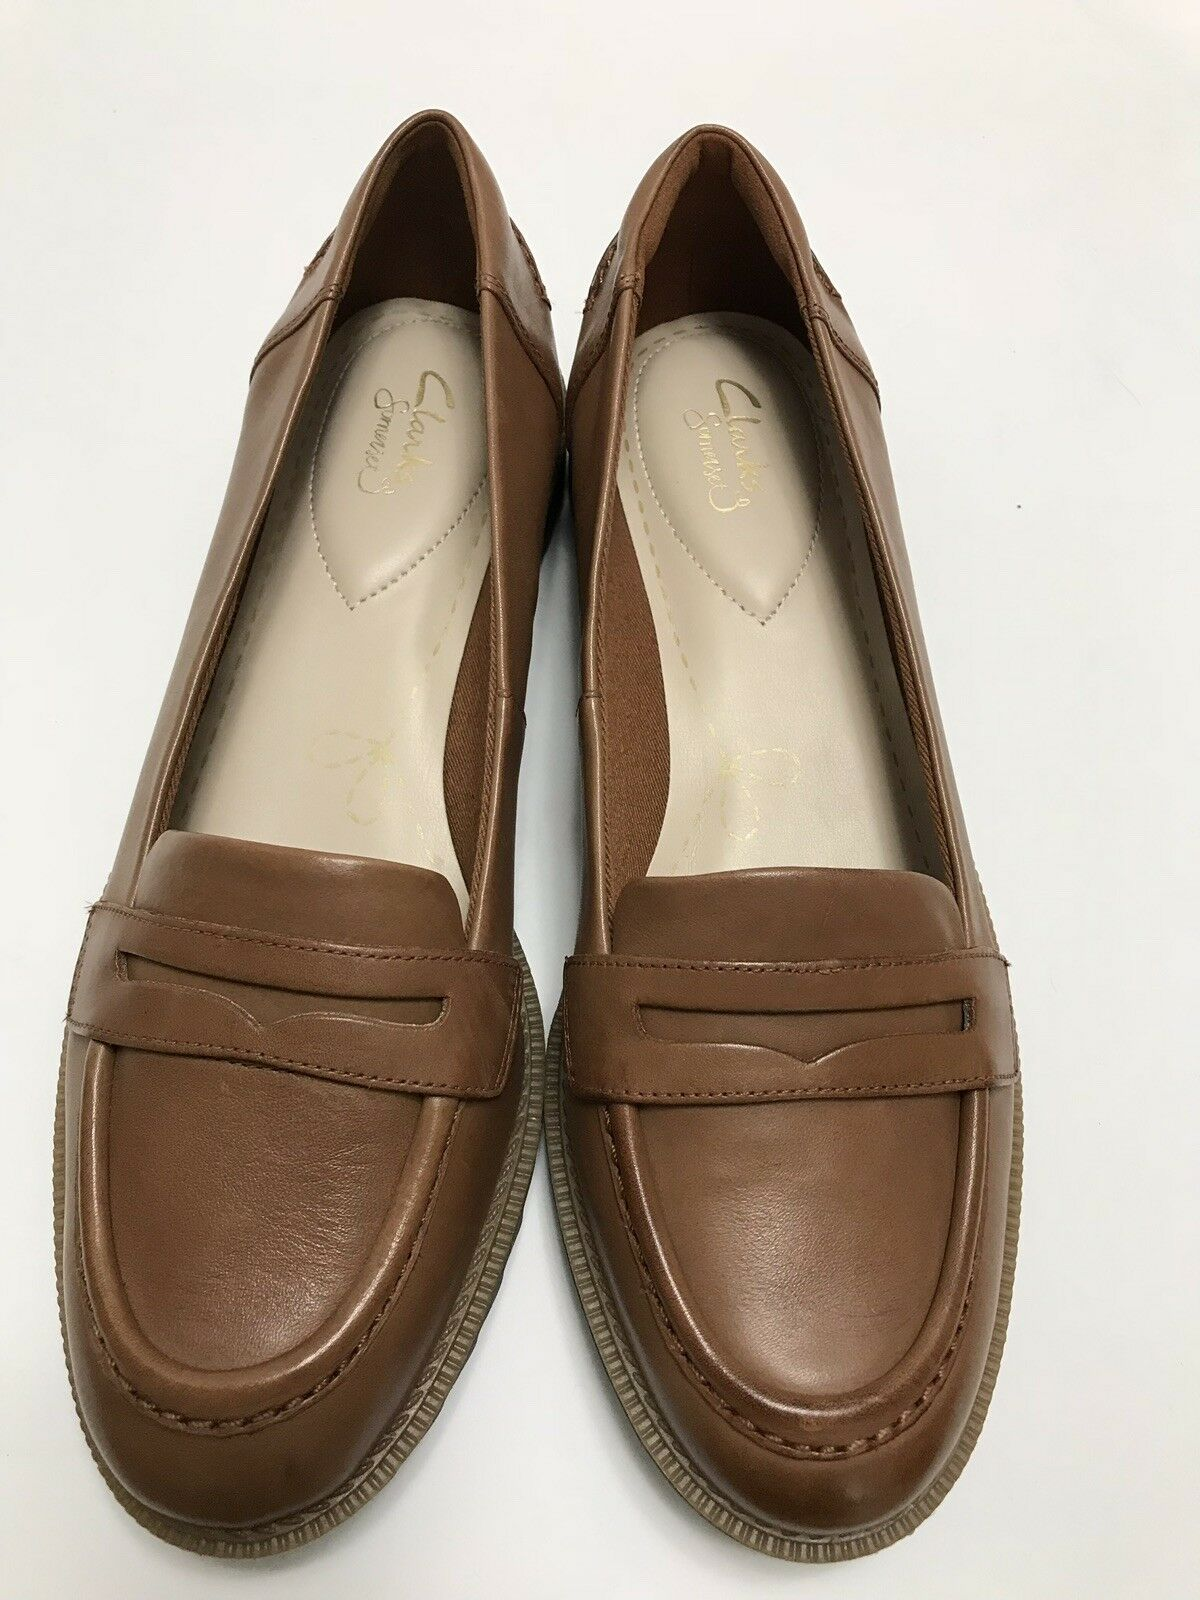 CLARKS CLARKS CLARKS Women Griffin Milly Tan Leather Penny Loafer Slip On shoes 10M NIB NEW badca2